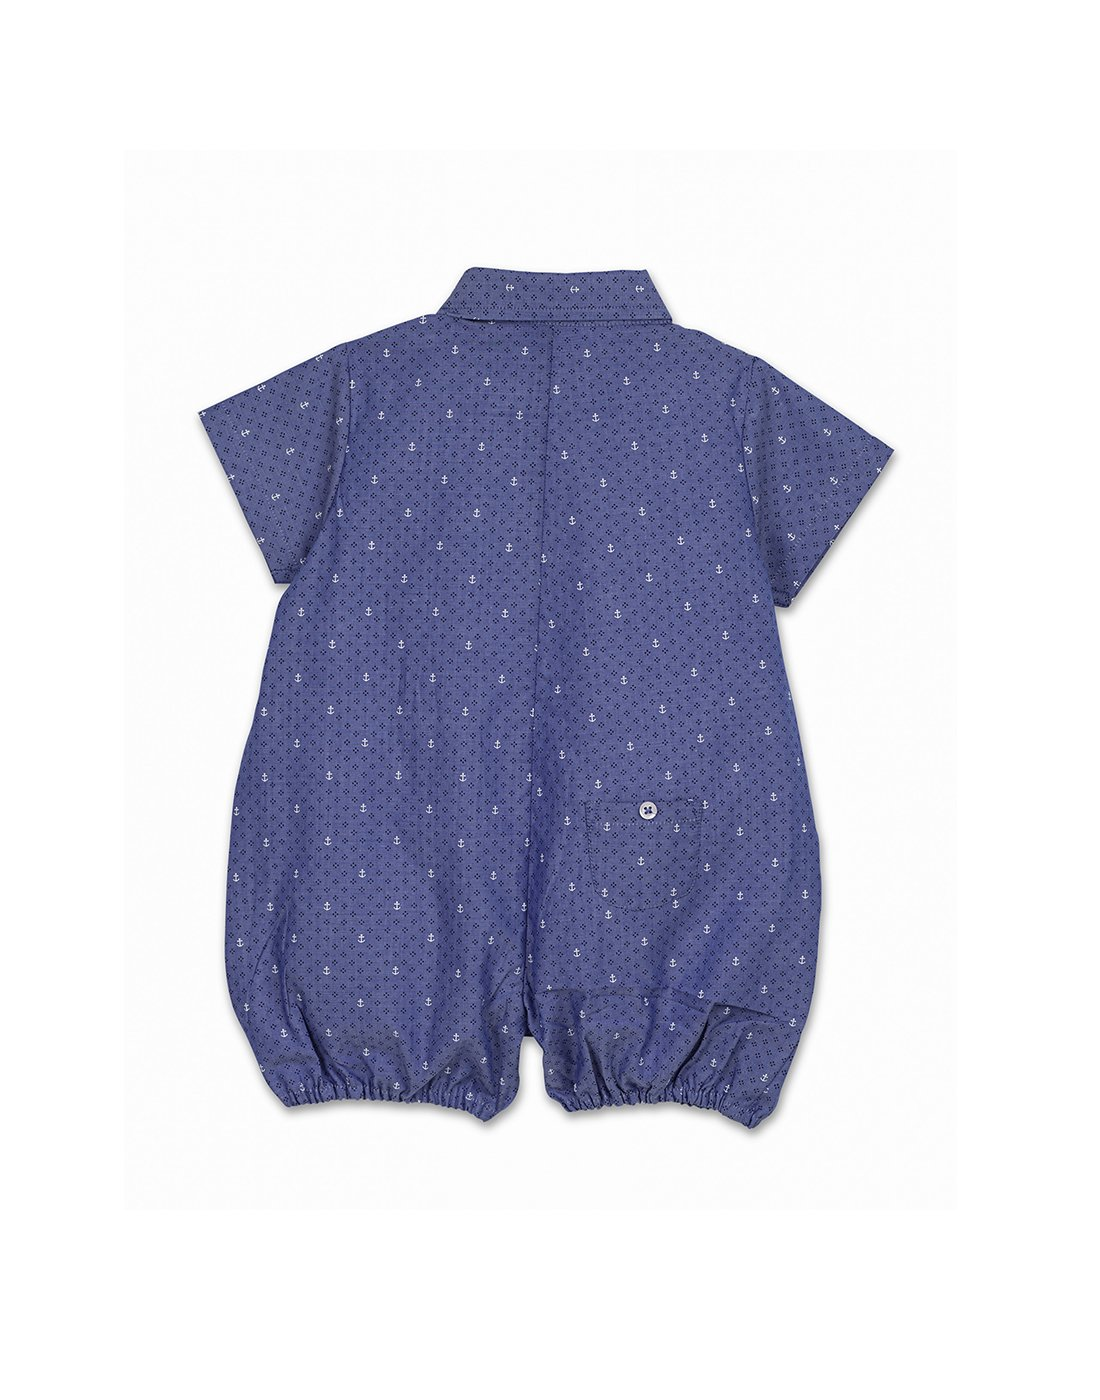 Blue Anchor Romper